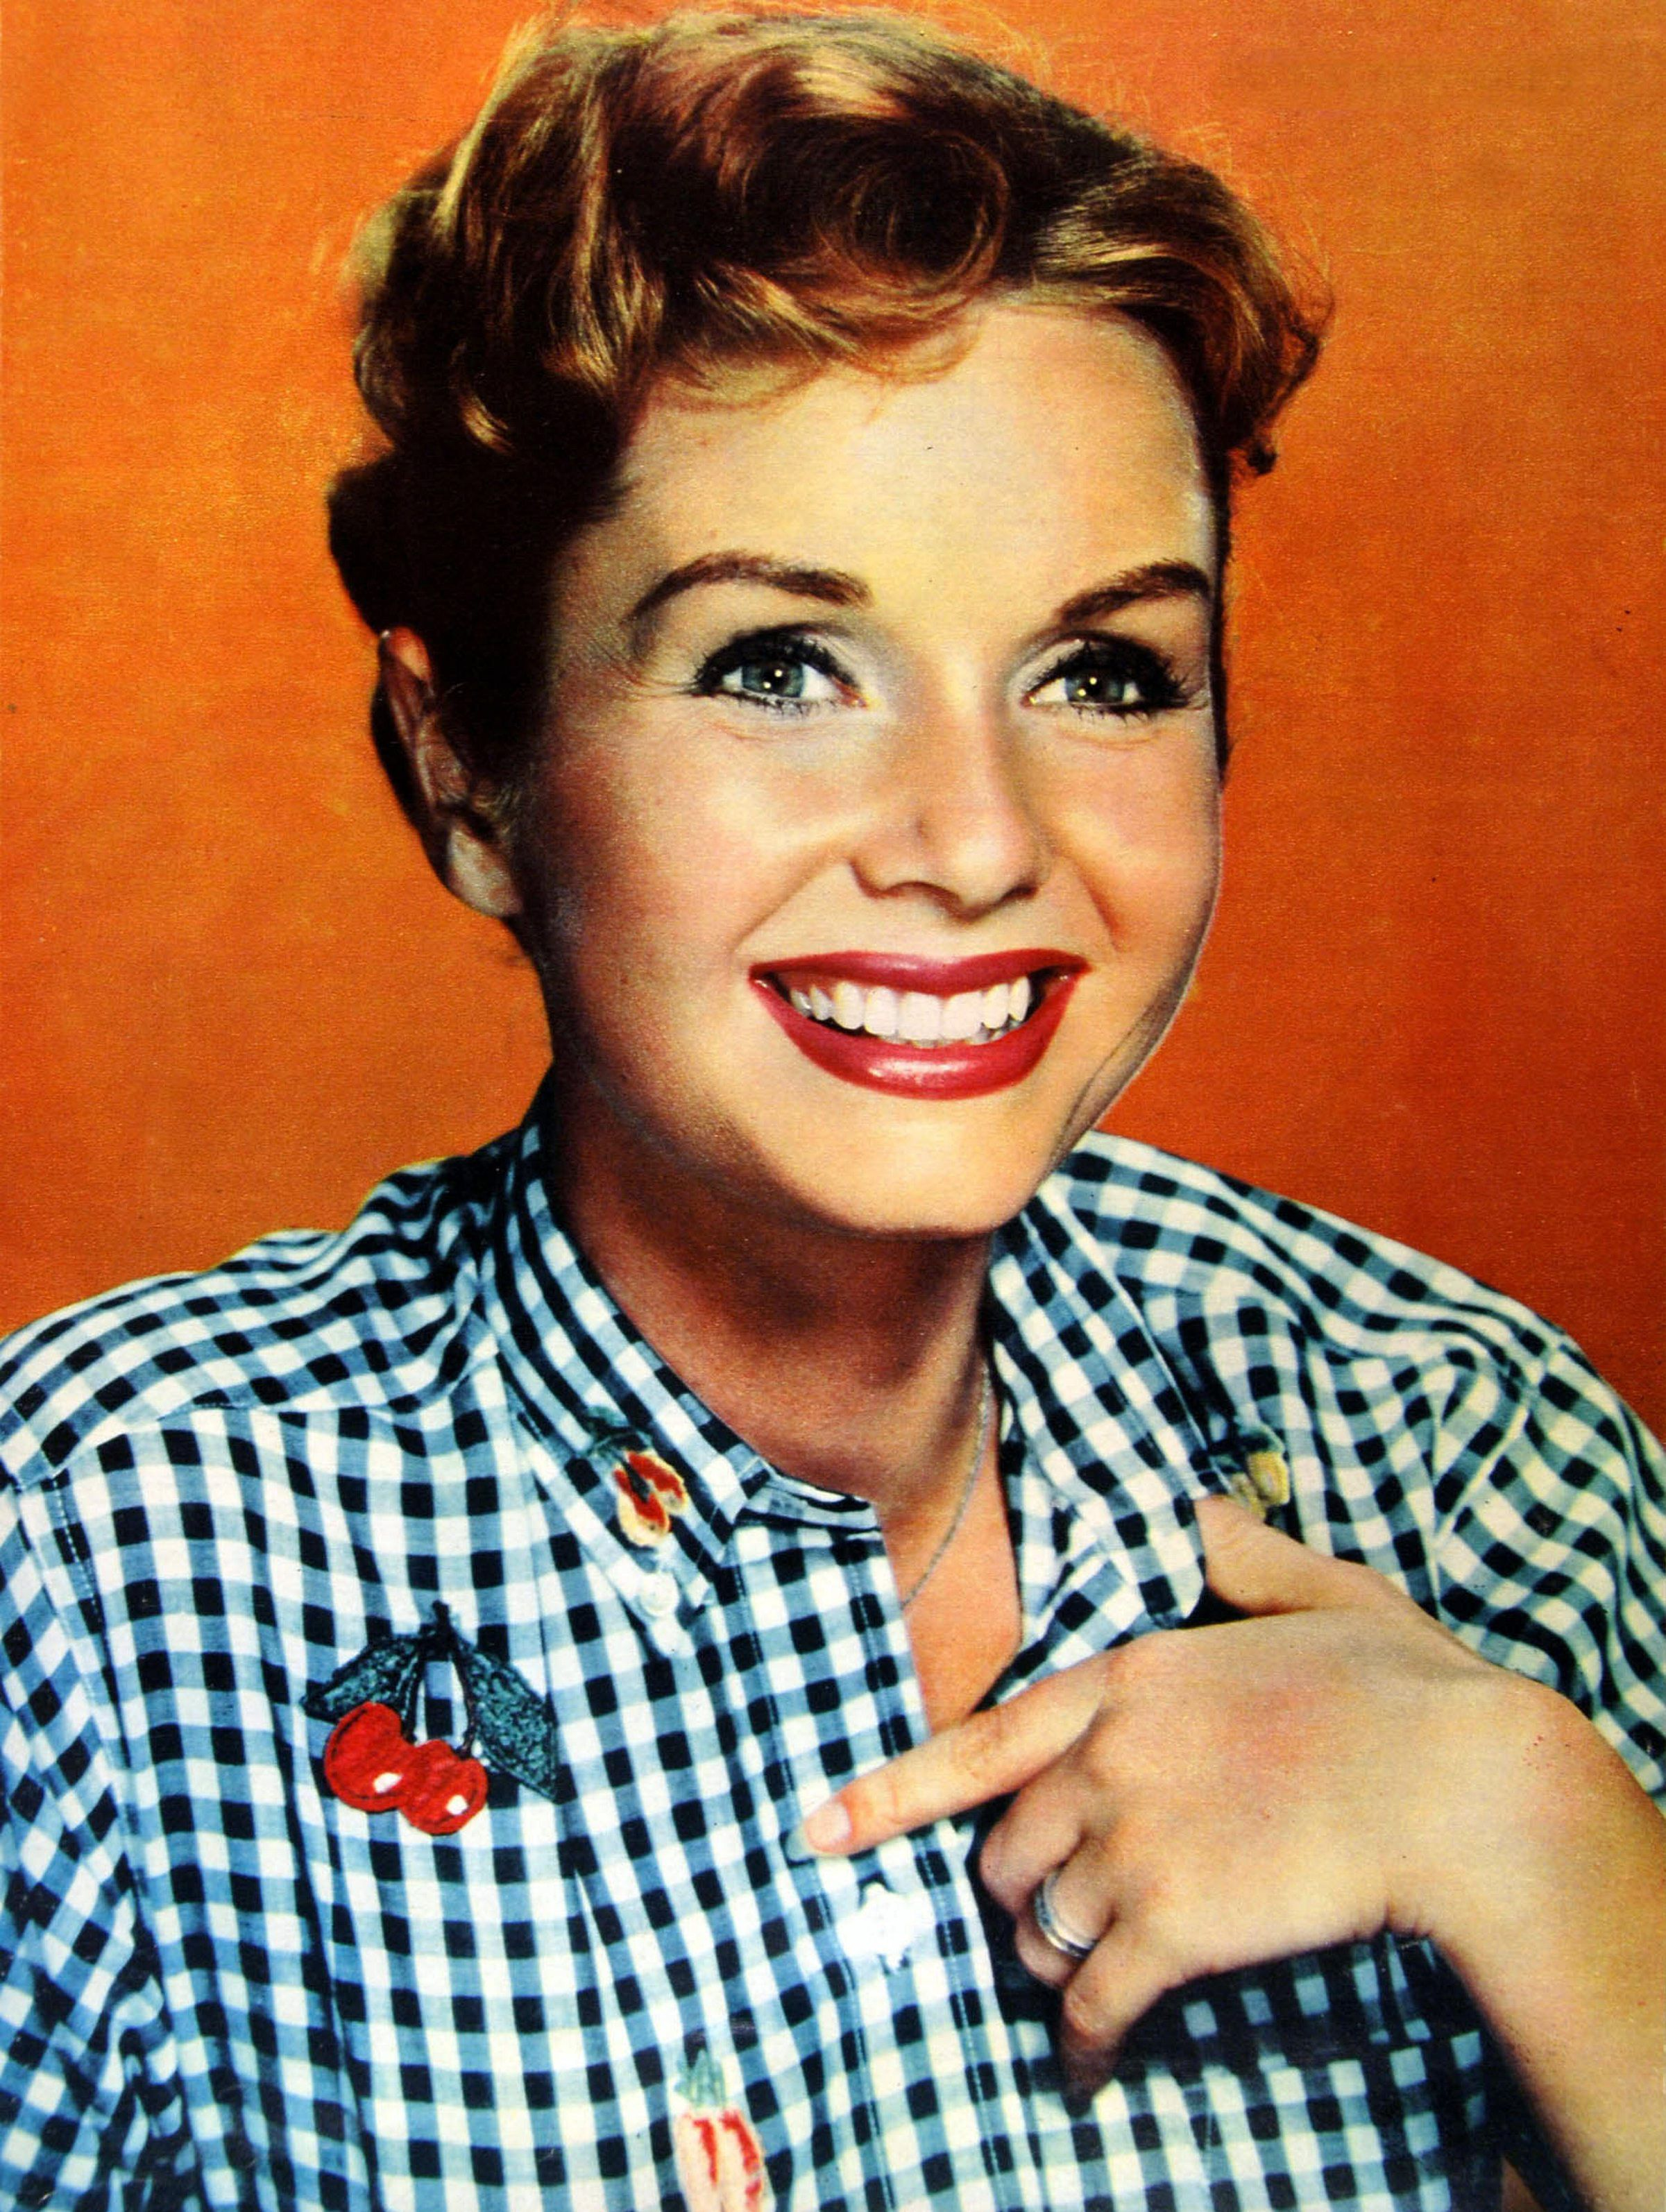 Debbie Reynolds Biography - Facts, Childhood, Family Life